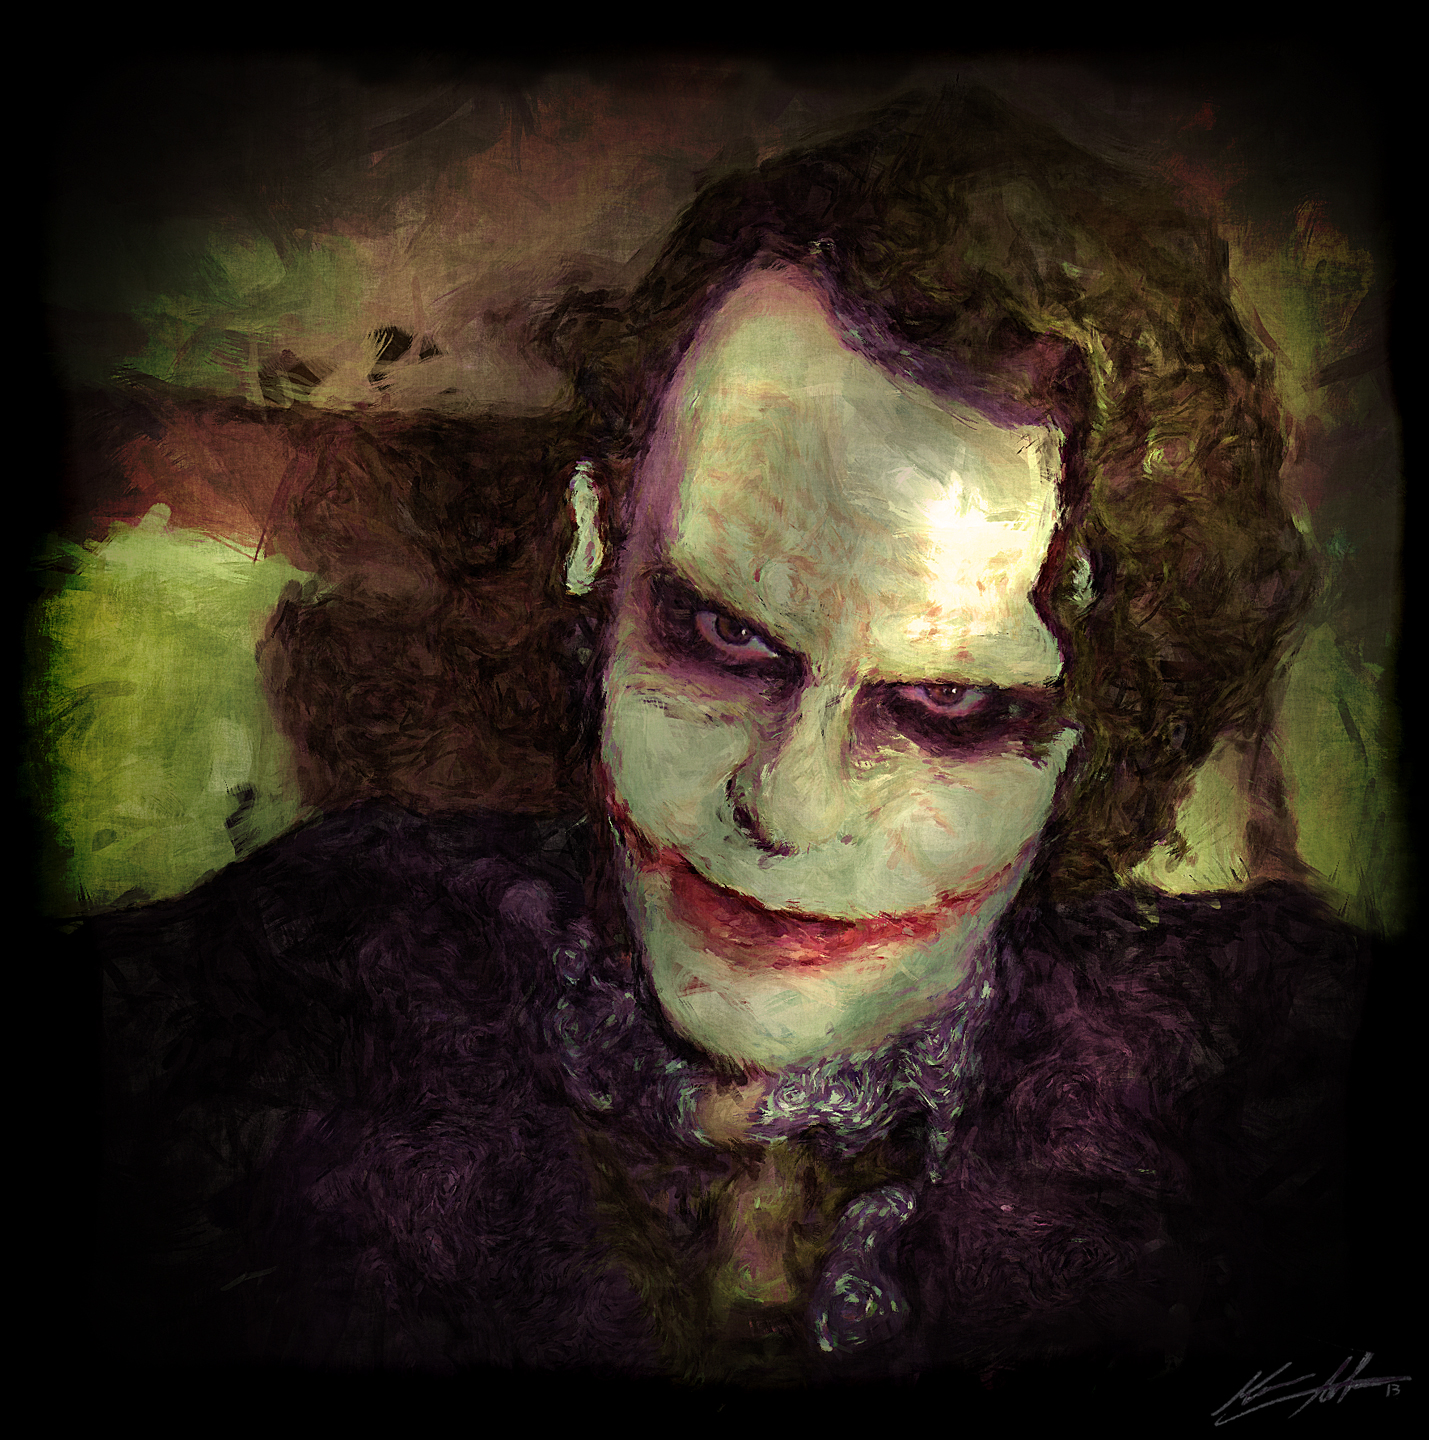 Here is my second Heath Joker digital painting. this was done with photoshop from scratch looking at a hot toy figurine while painting with my big ass tablet. It's taking me less time as learn to use the tablet better. Faces are easier for me than the whole body I guess cause I don't have to mess with that crazy pattern shirt like on my 1st one. I promised Mary I would do something less morbid and dark on my next one cause these are looking very dark and gloomy. I also put more detail and pain in his eyes. I am liking the portraits more because it's faster and I can show more detail. Hope you like it.